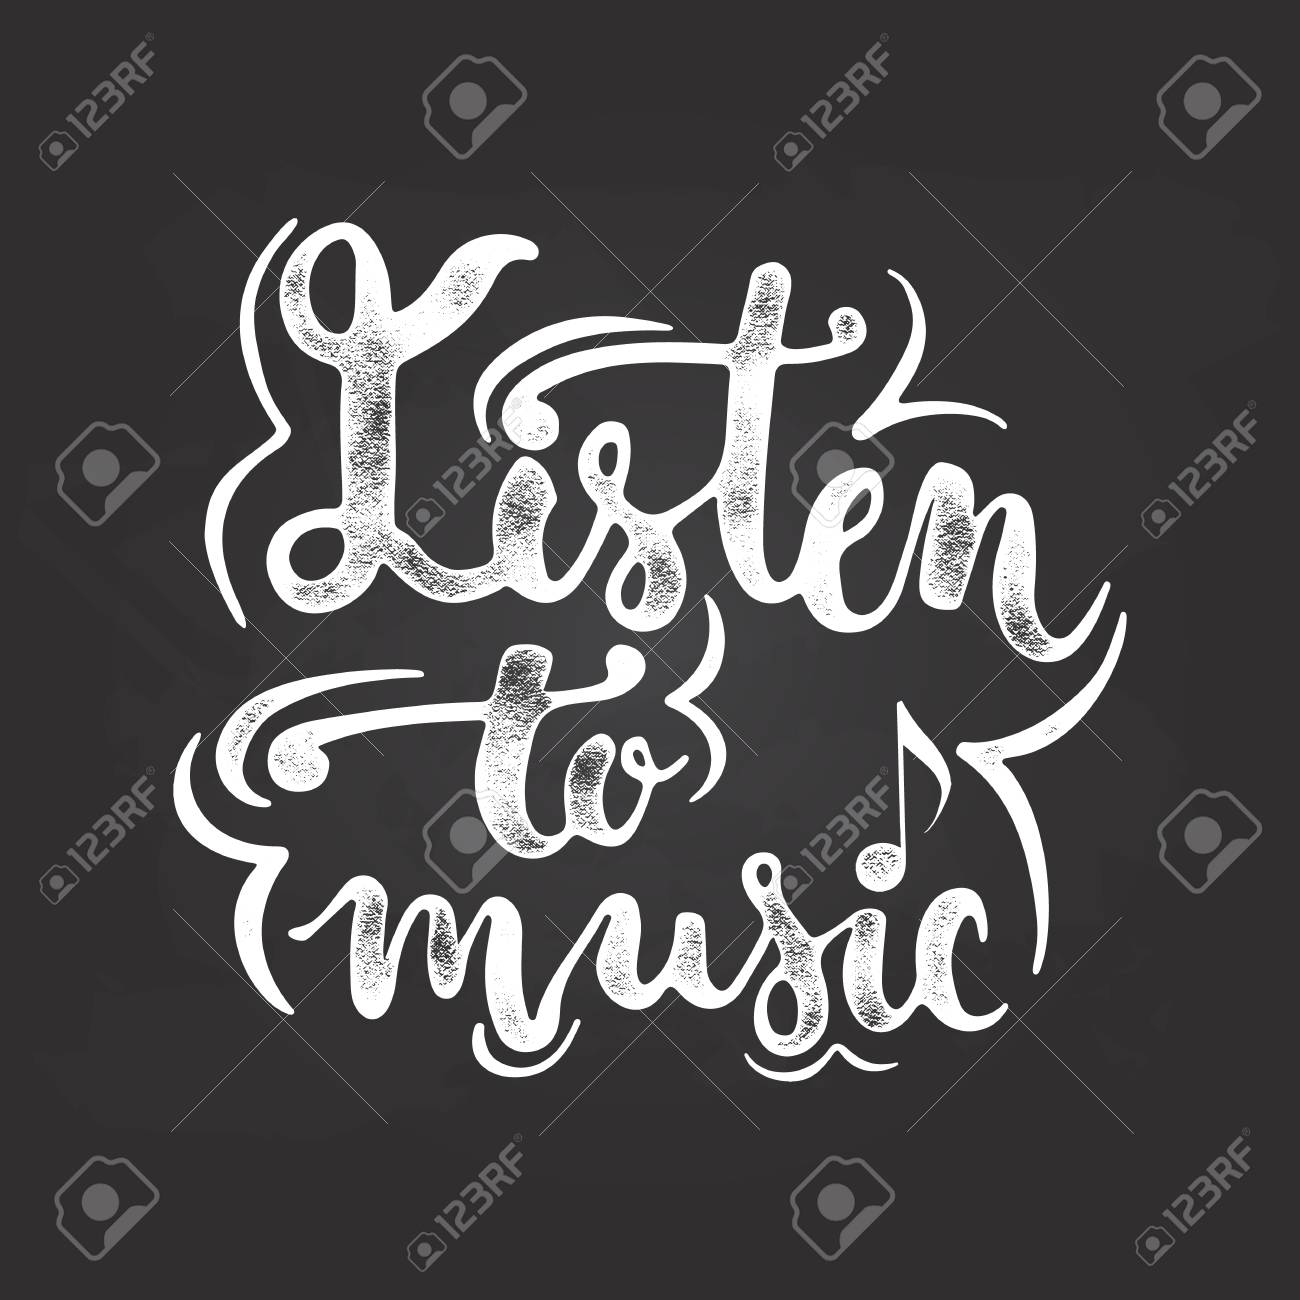 Hand Drawn Chalk Typography Grunge Textured Lettering Phrase Listen To Music Isolated On The Black Chalkboard